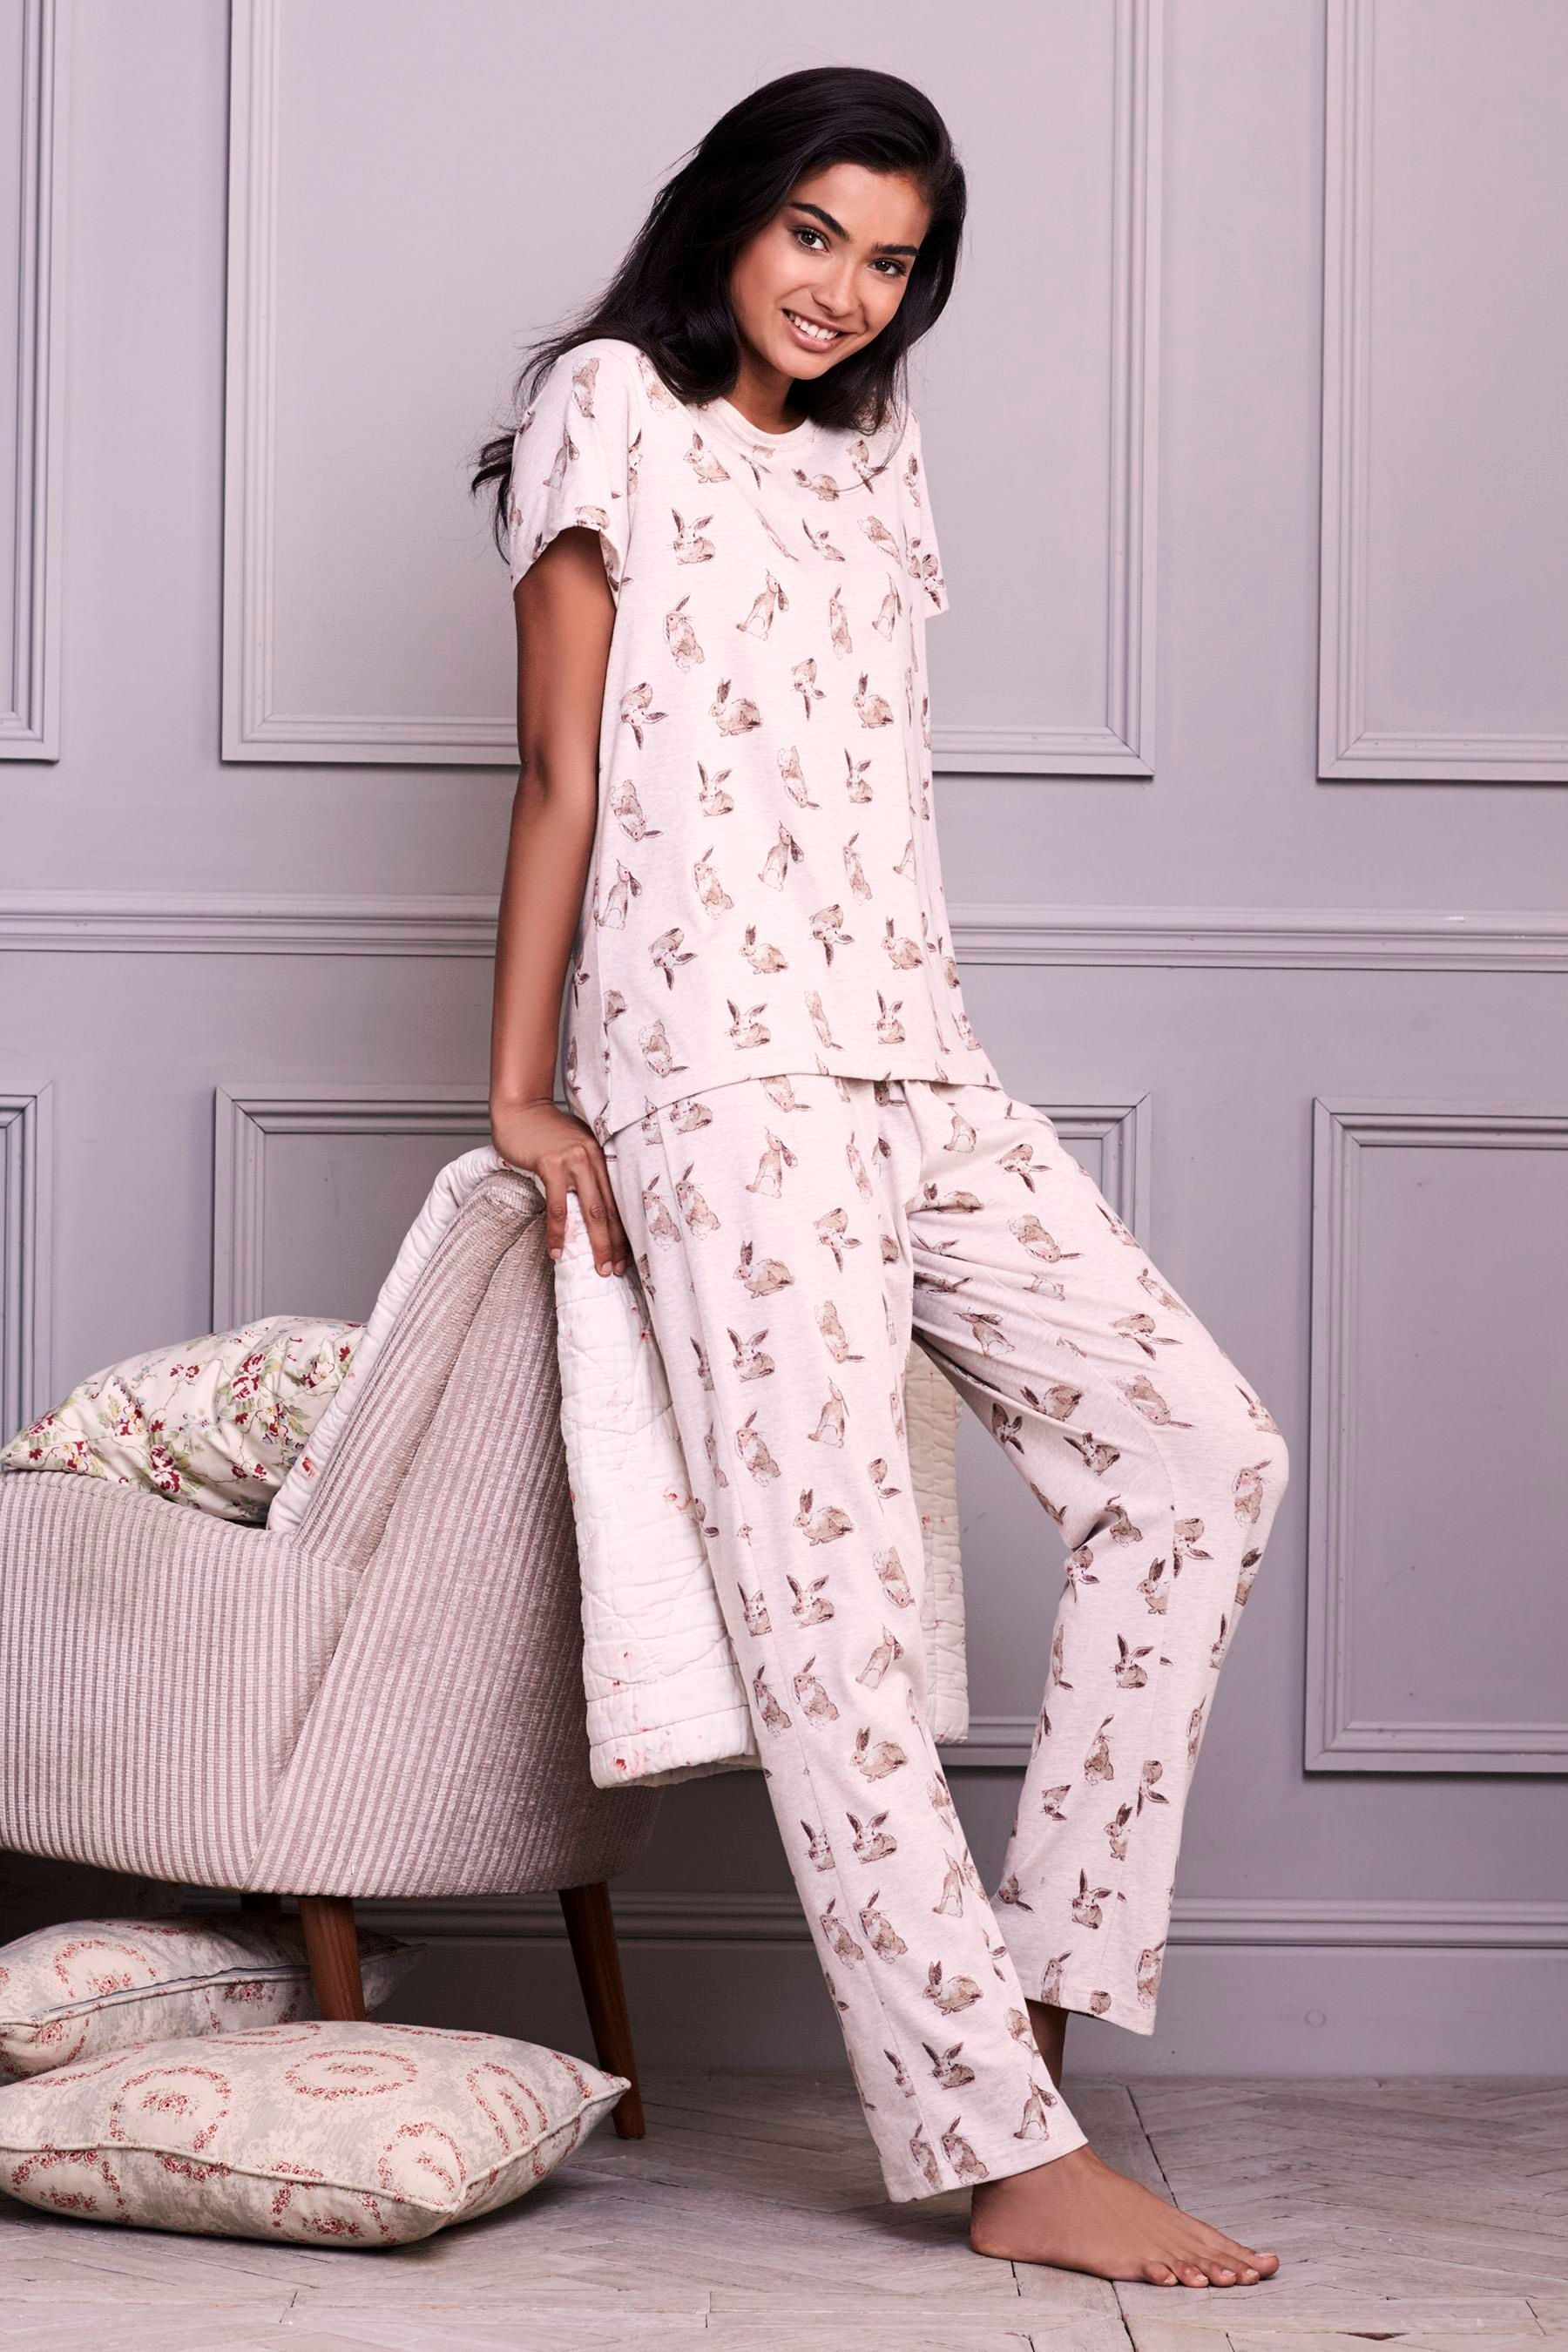 86686a33eb Buy Oatmeal Wrapband Bunny Print Pyjamas from the Next UK online shop